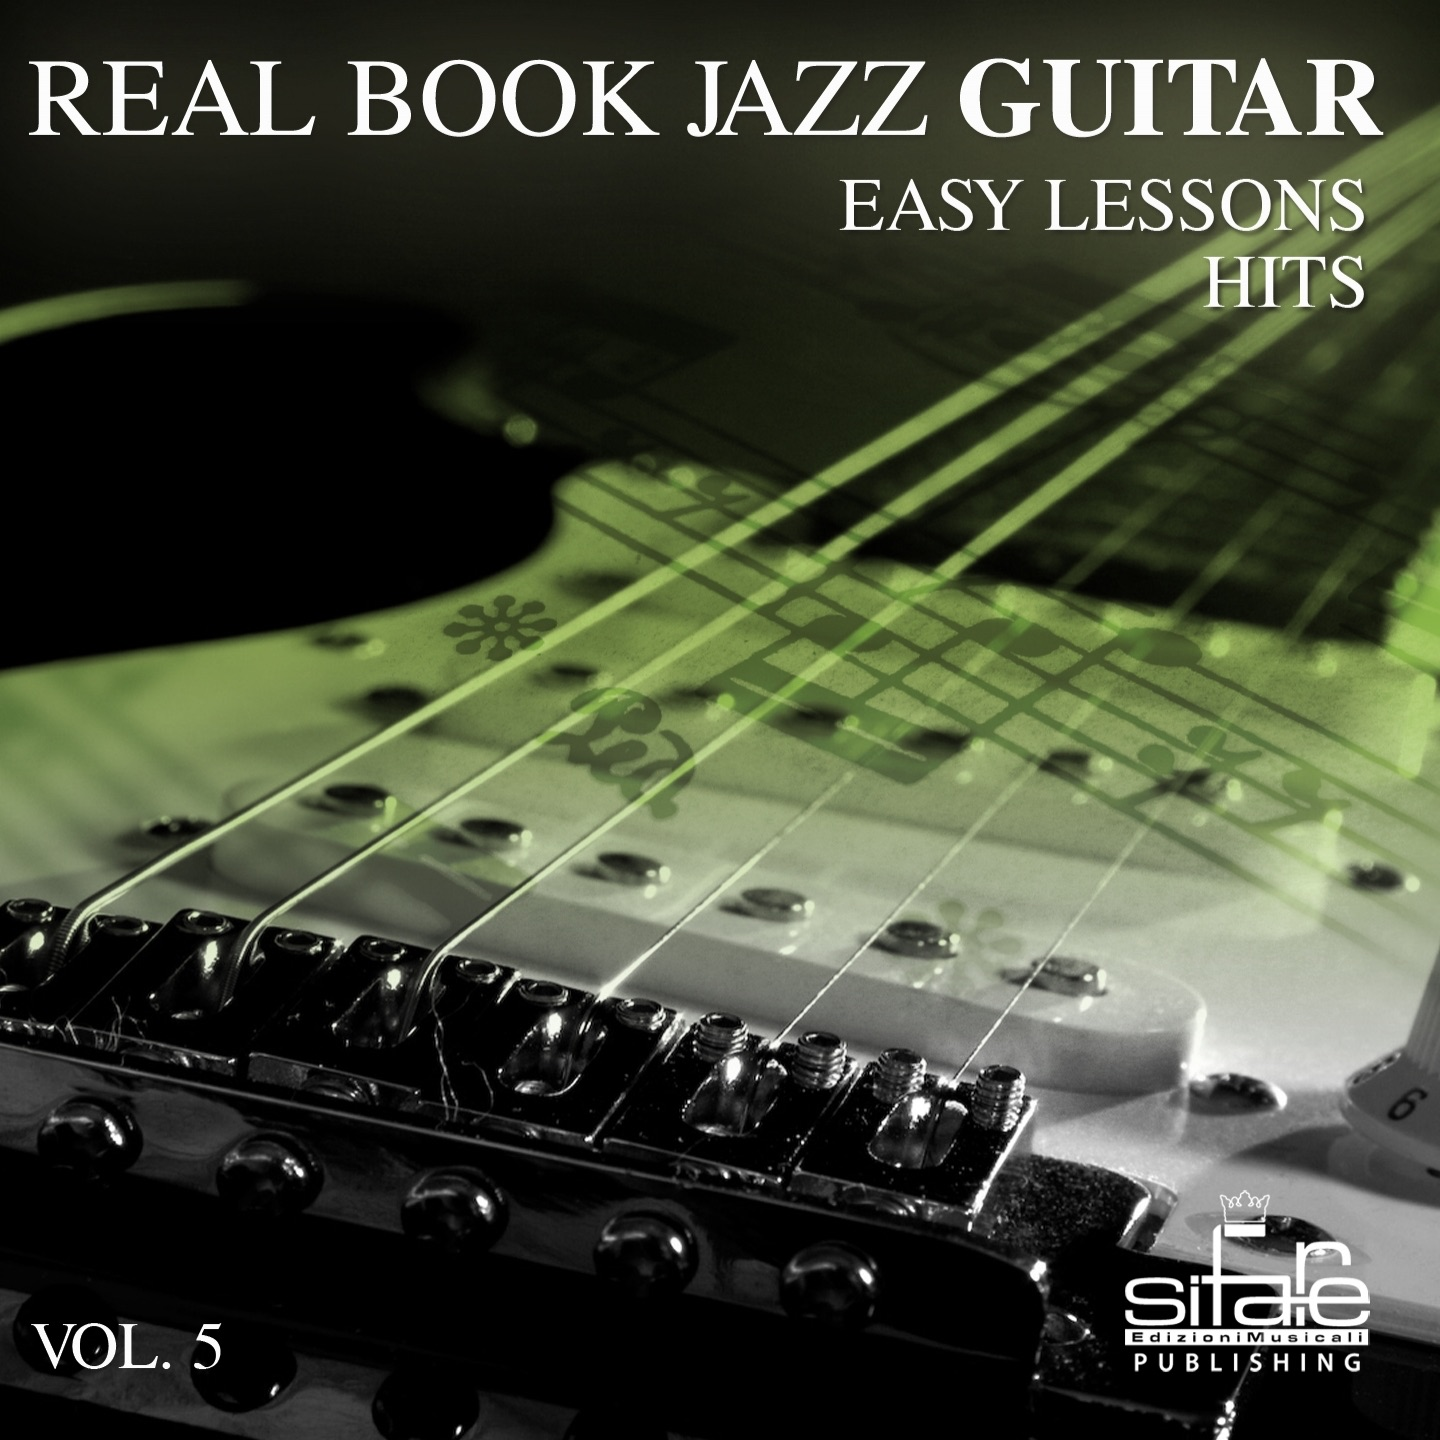 Real Book Jazz Guitar Easy Lessons, Vol. 5 (Jazz Guitar Hit Lessons) - Single